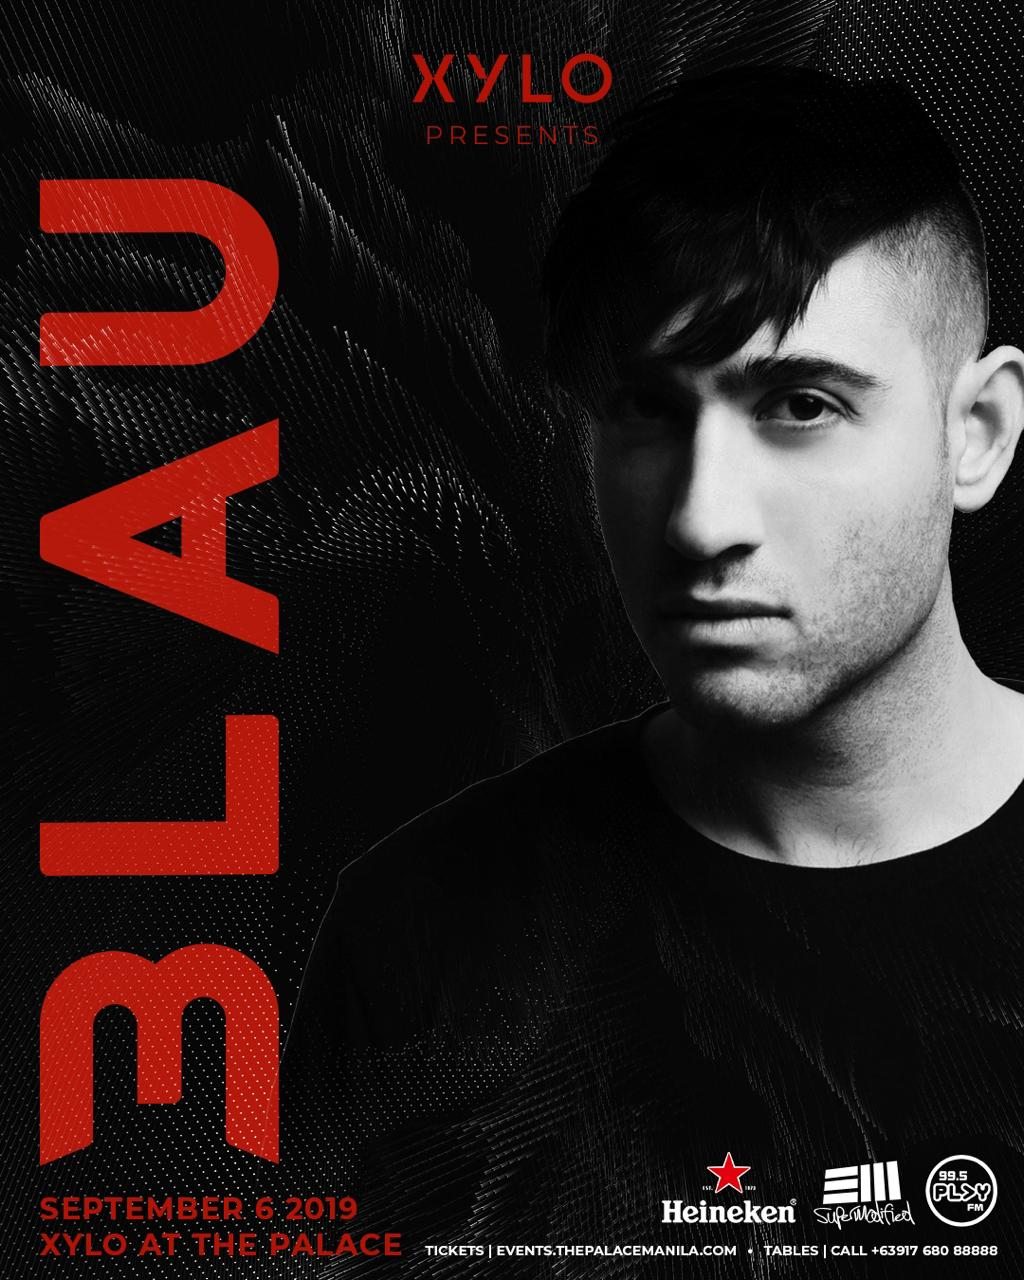 3LAU at XYLO